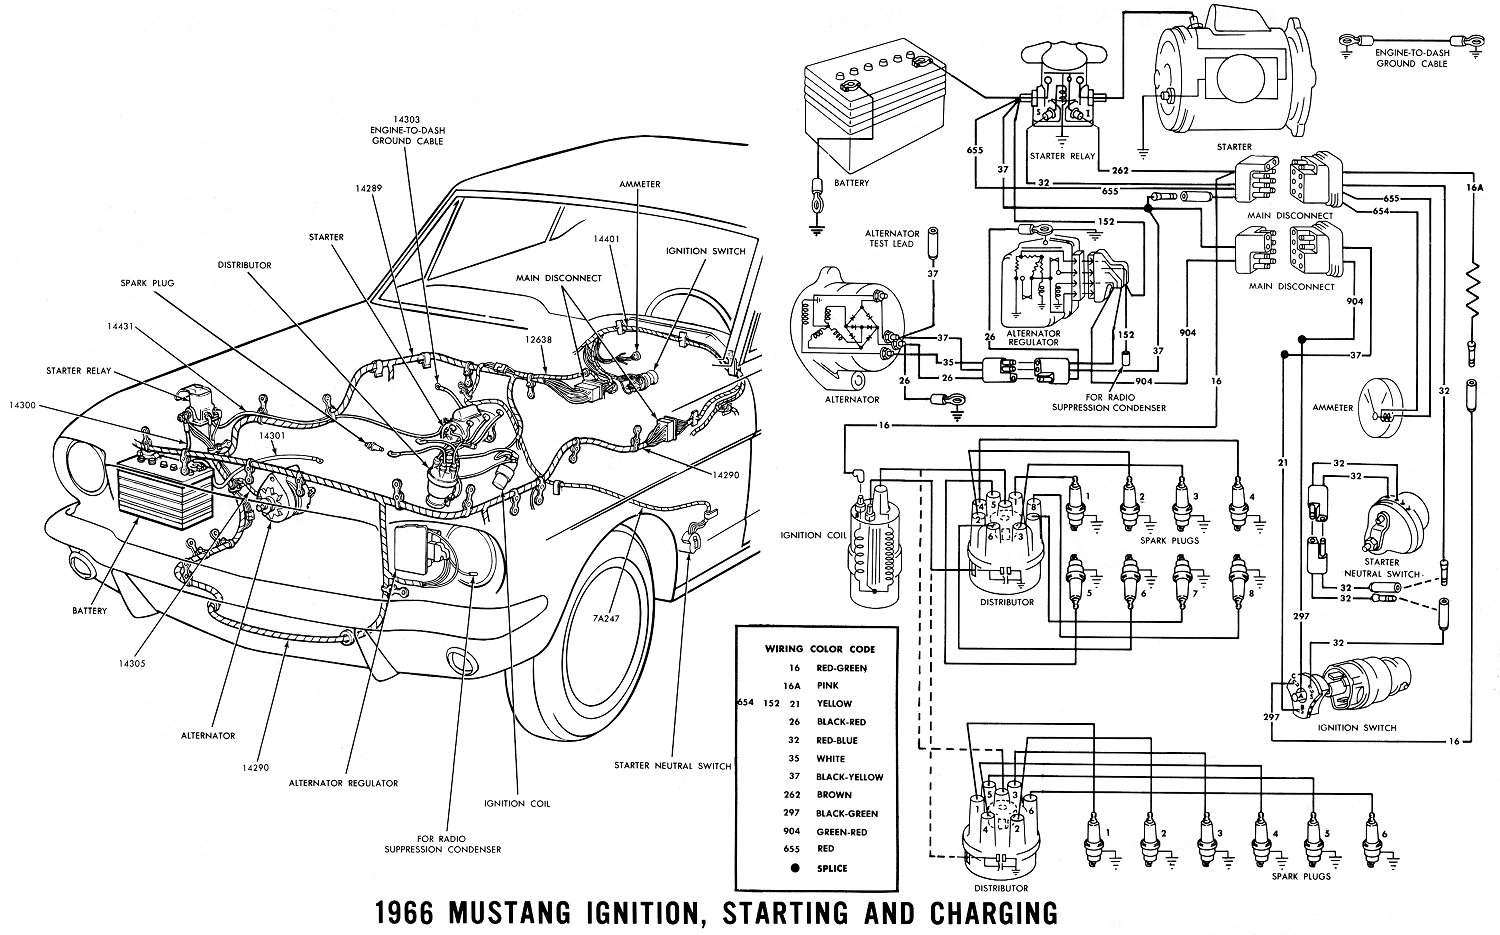 66ignit 1966 mustang wiring diagrams average joe restoration 1966 mustang alternator wiring diagram at mifinder.co